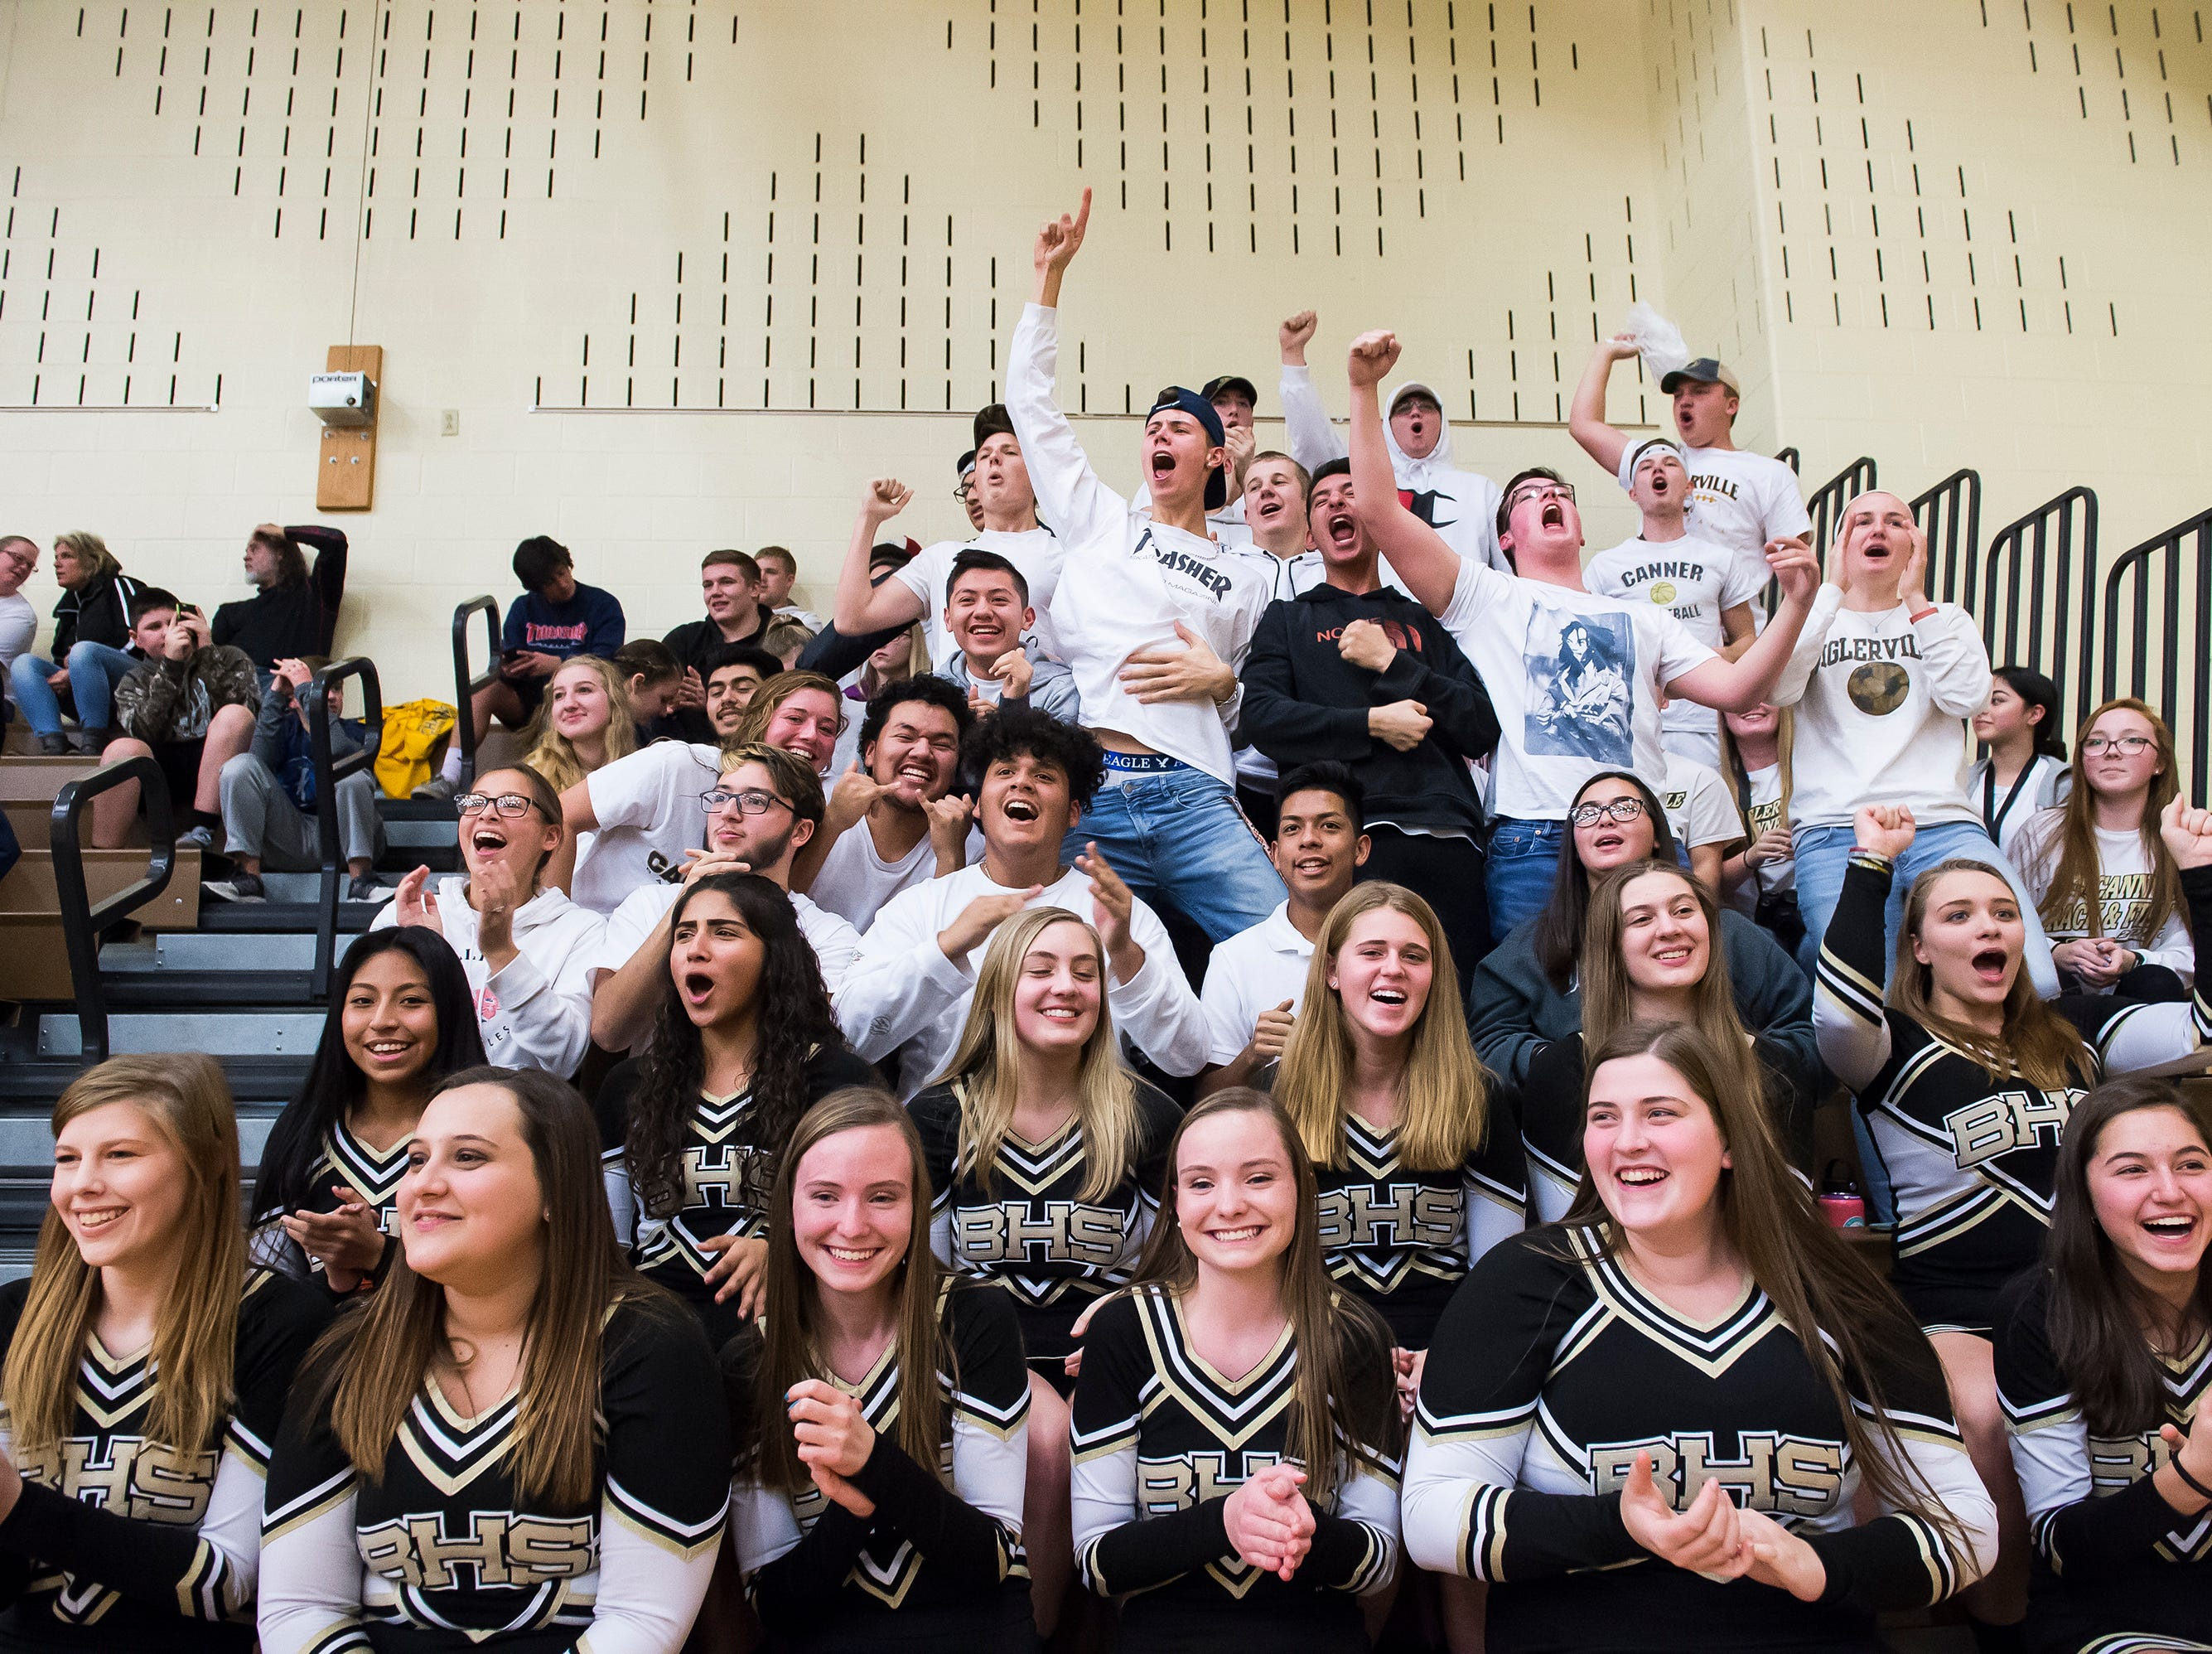 The Biglerville student section and cheerleaders celebrate as time expires on the clock and the Canners defeat Delone Catholic 77-65 at home on Tuesday, December 11, 2018.